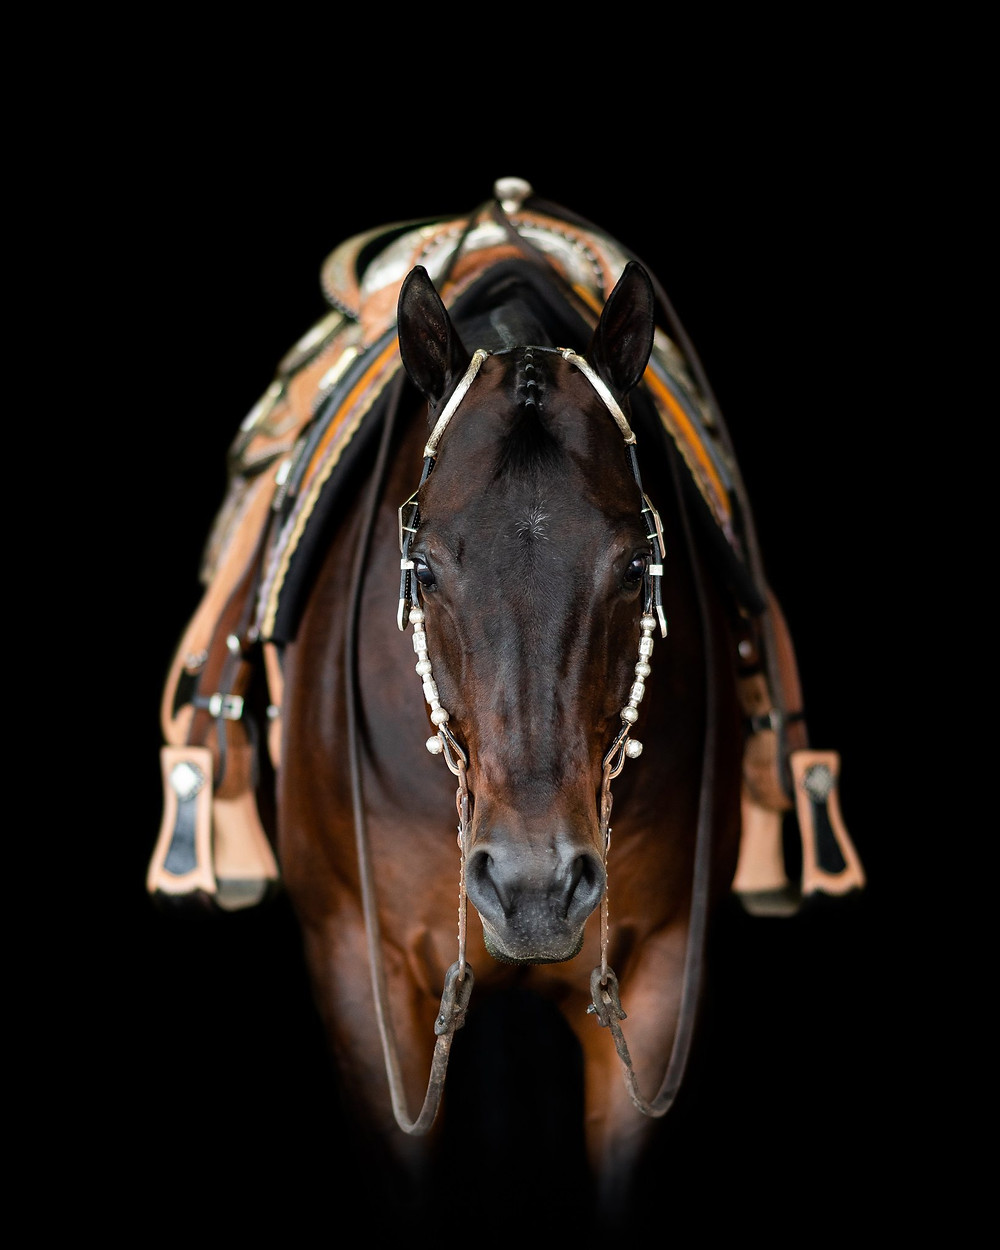 A black background portrait of Pink, with her saddle on